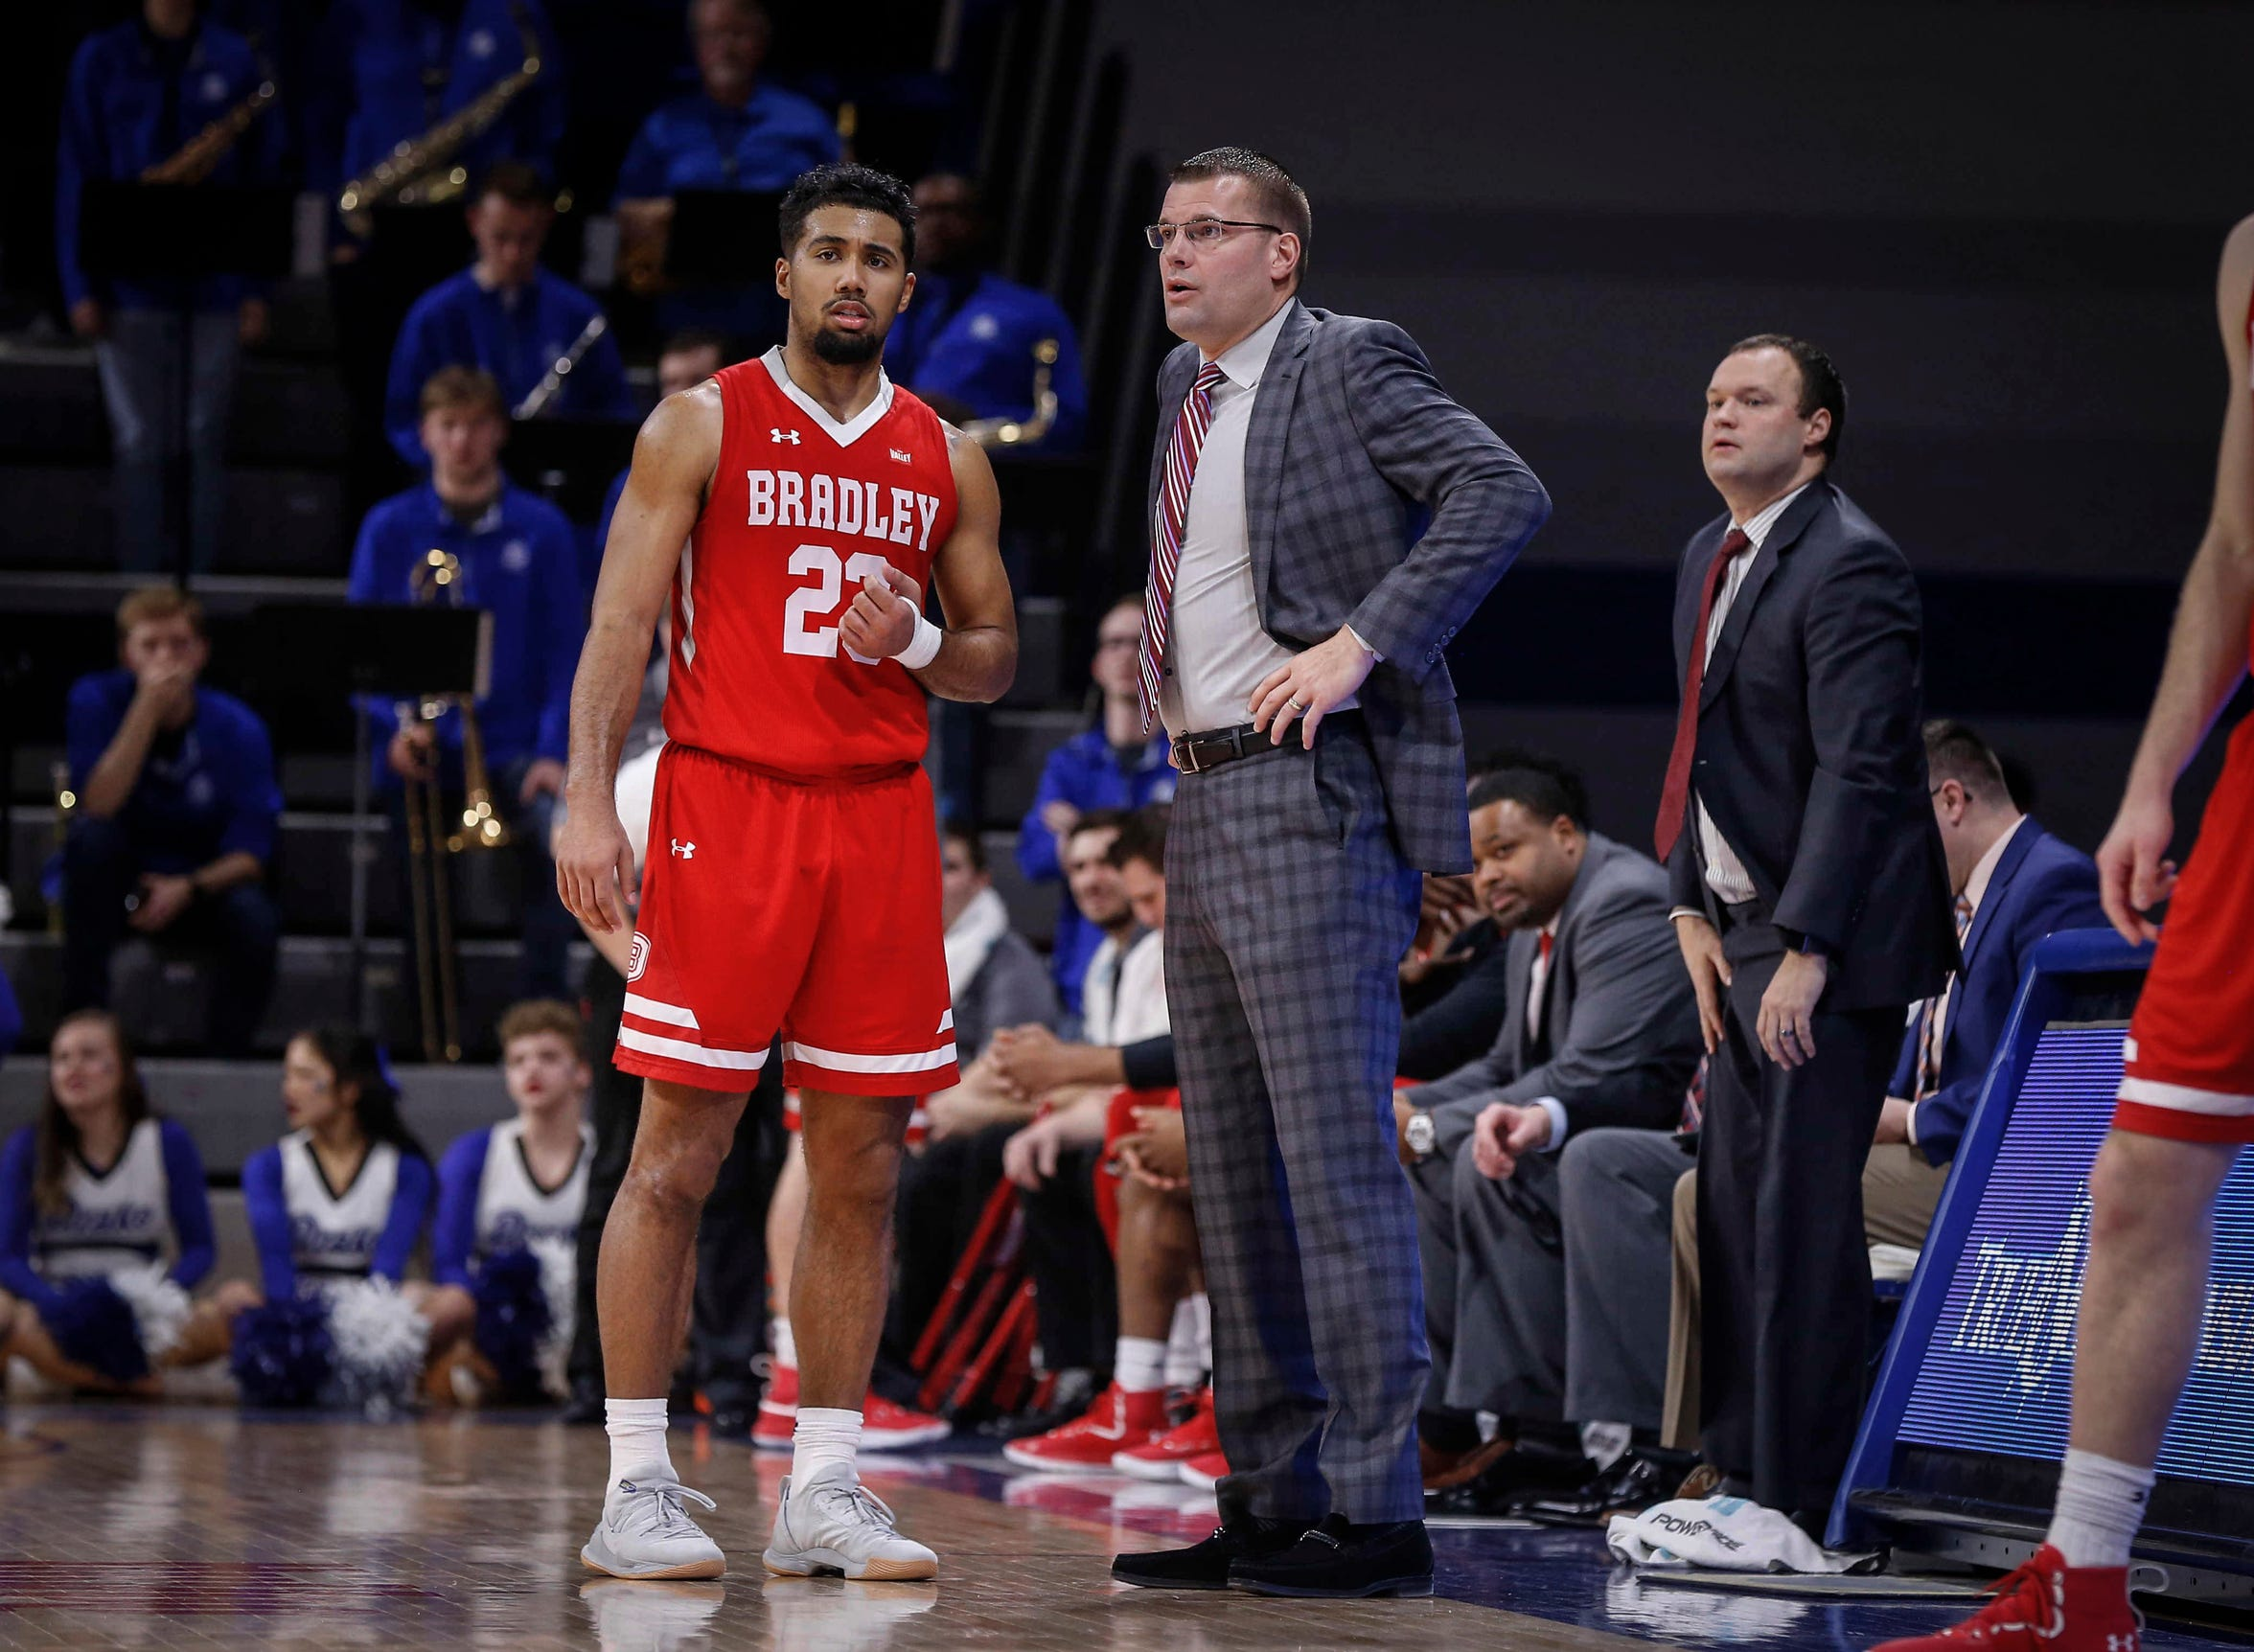 Bradley mens head basketball coach Brian Wardle talks with senior Dwayne Lautier-Ogunleye following a technical foul call in the second half against Drake on Tuesday, Feb. 19, 2019, at the Knapp Center in Des Moines.